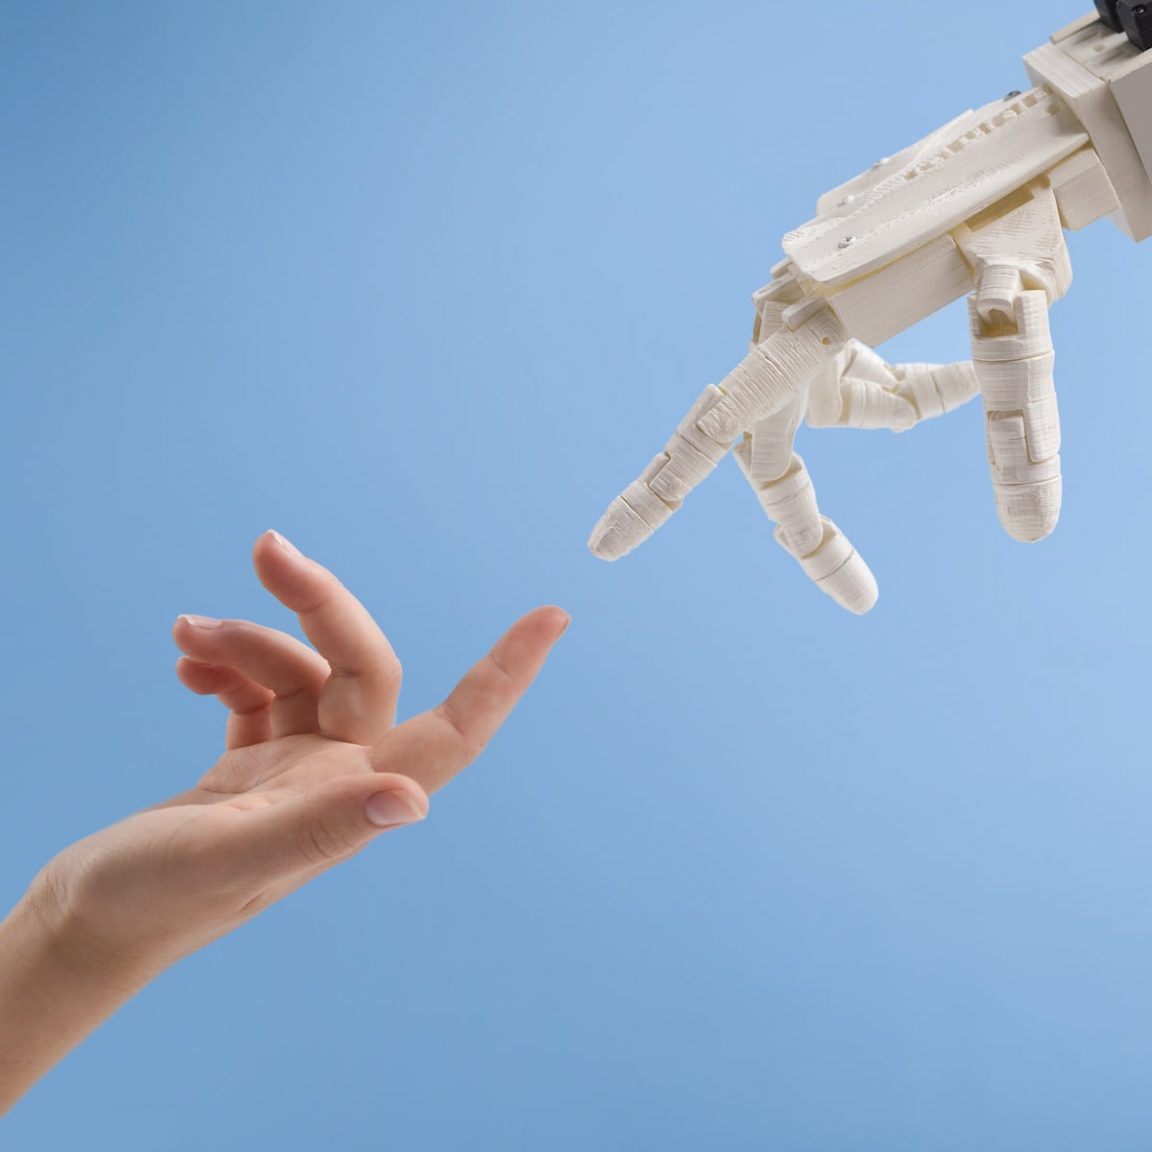 female and robot hands reaching to each other on 6289XCD